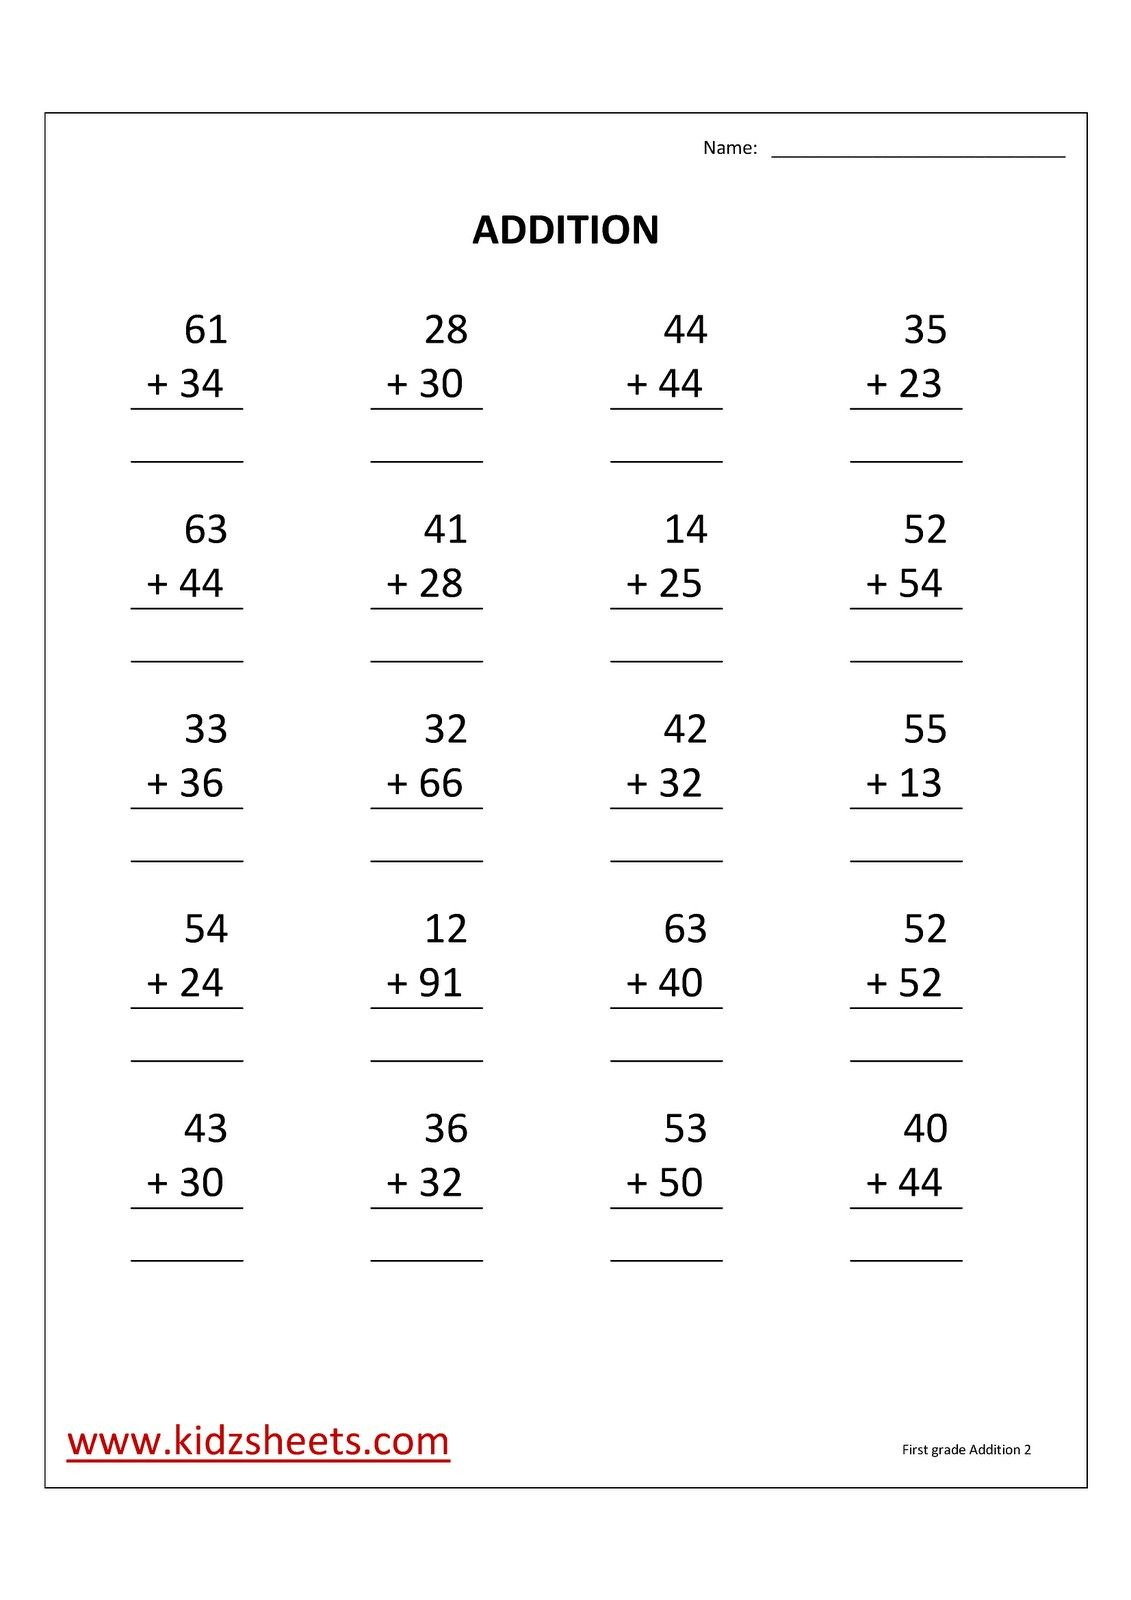 3 Grade Math Worksheets Addition First Grade Math Addition Worksheets 2nd Grade Math Worksheets Math Addition Worksheets 1st Grade Math Worksheets